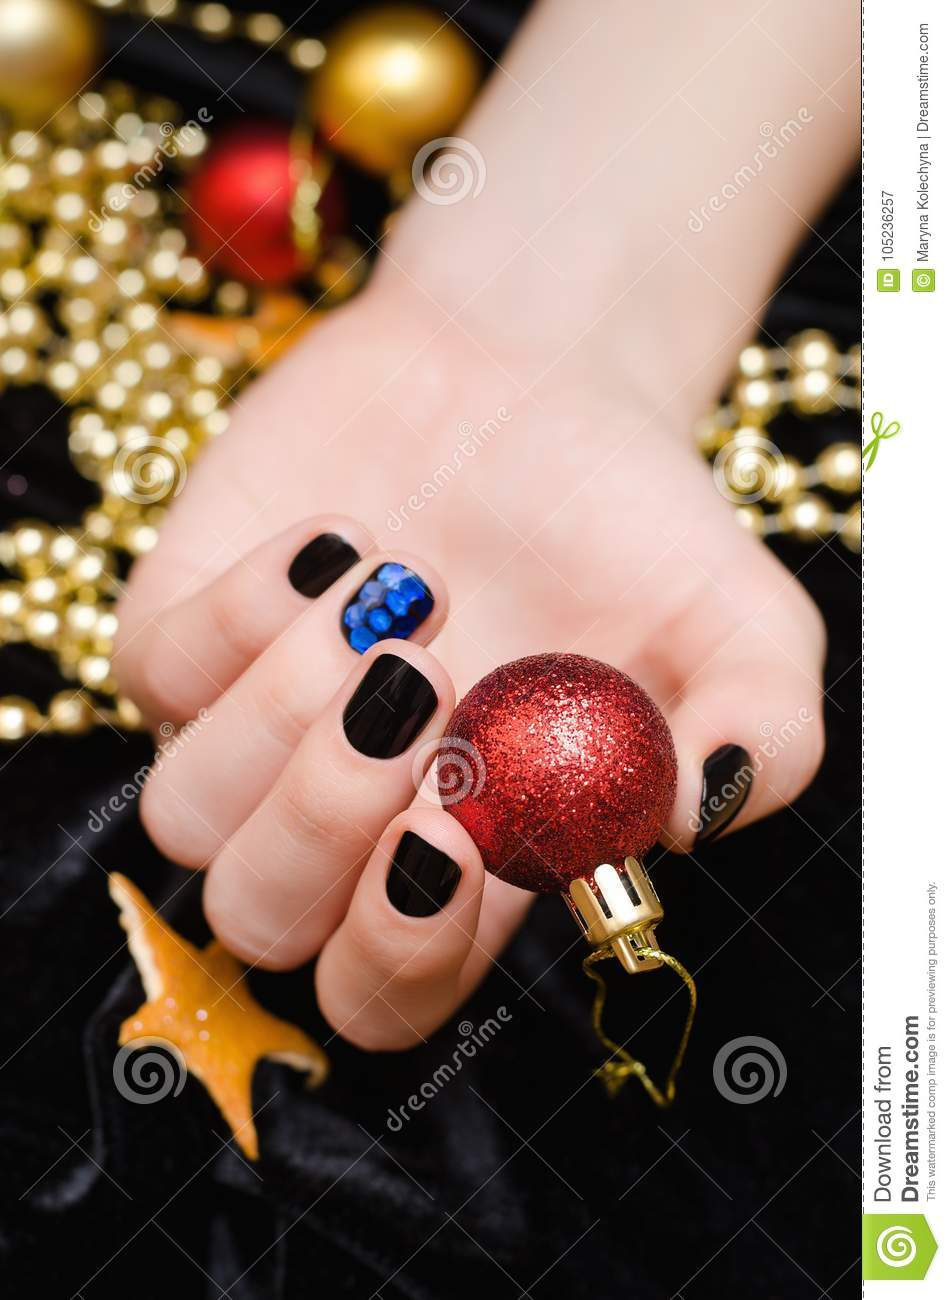 Beautiful Female Hand With Red And White Nail Design Christmas Nail Art